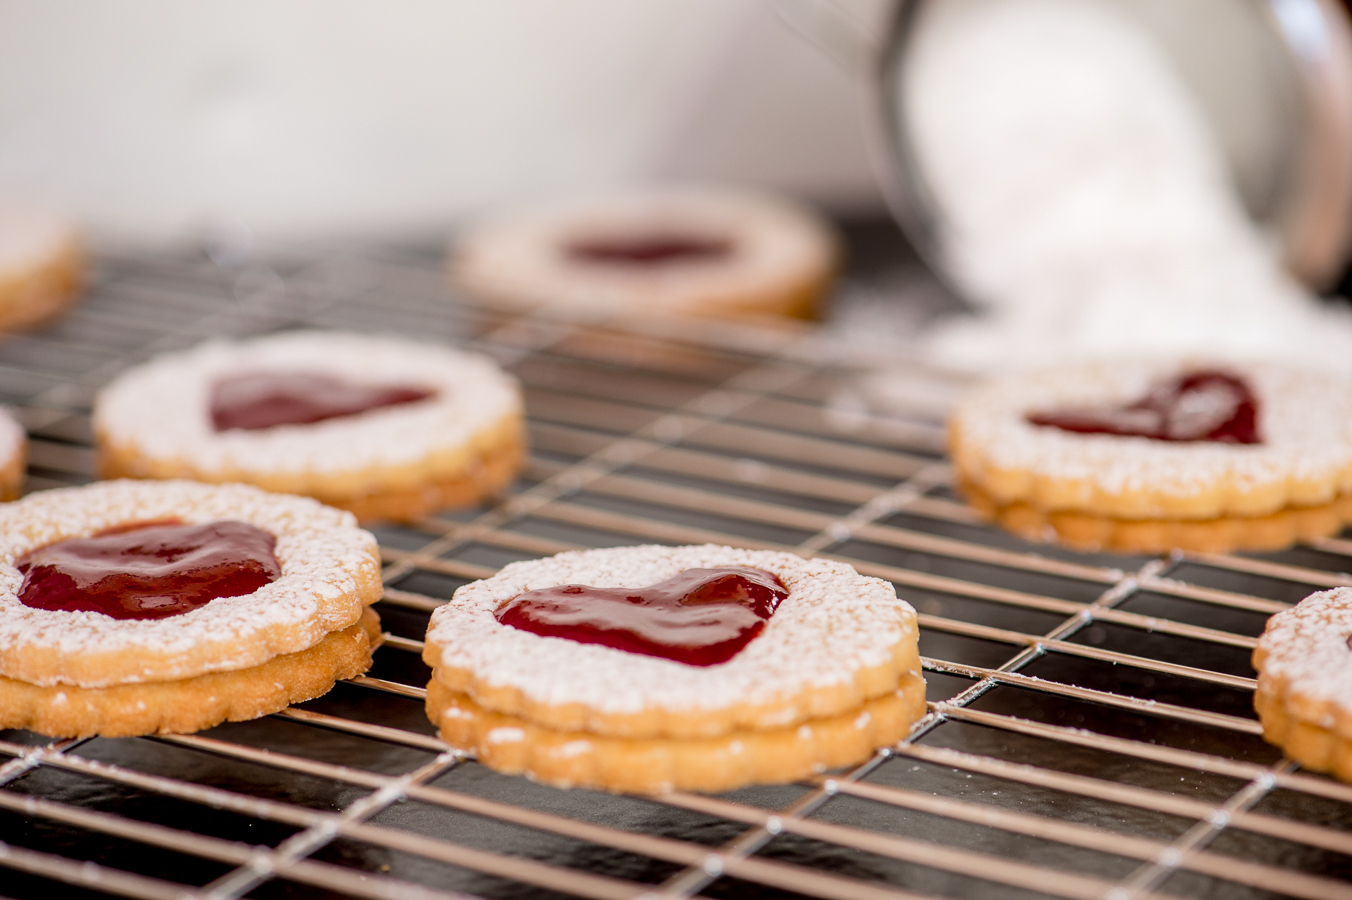 The Sweet Rebellion wrote a new post, Jam Sandwich Cookies, on the site The Sweet Rebellion